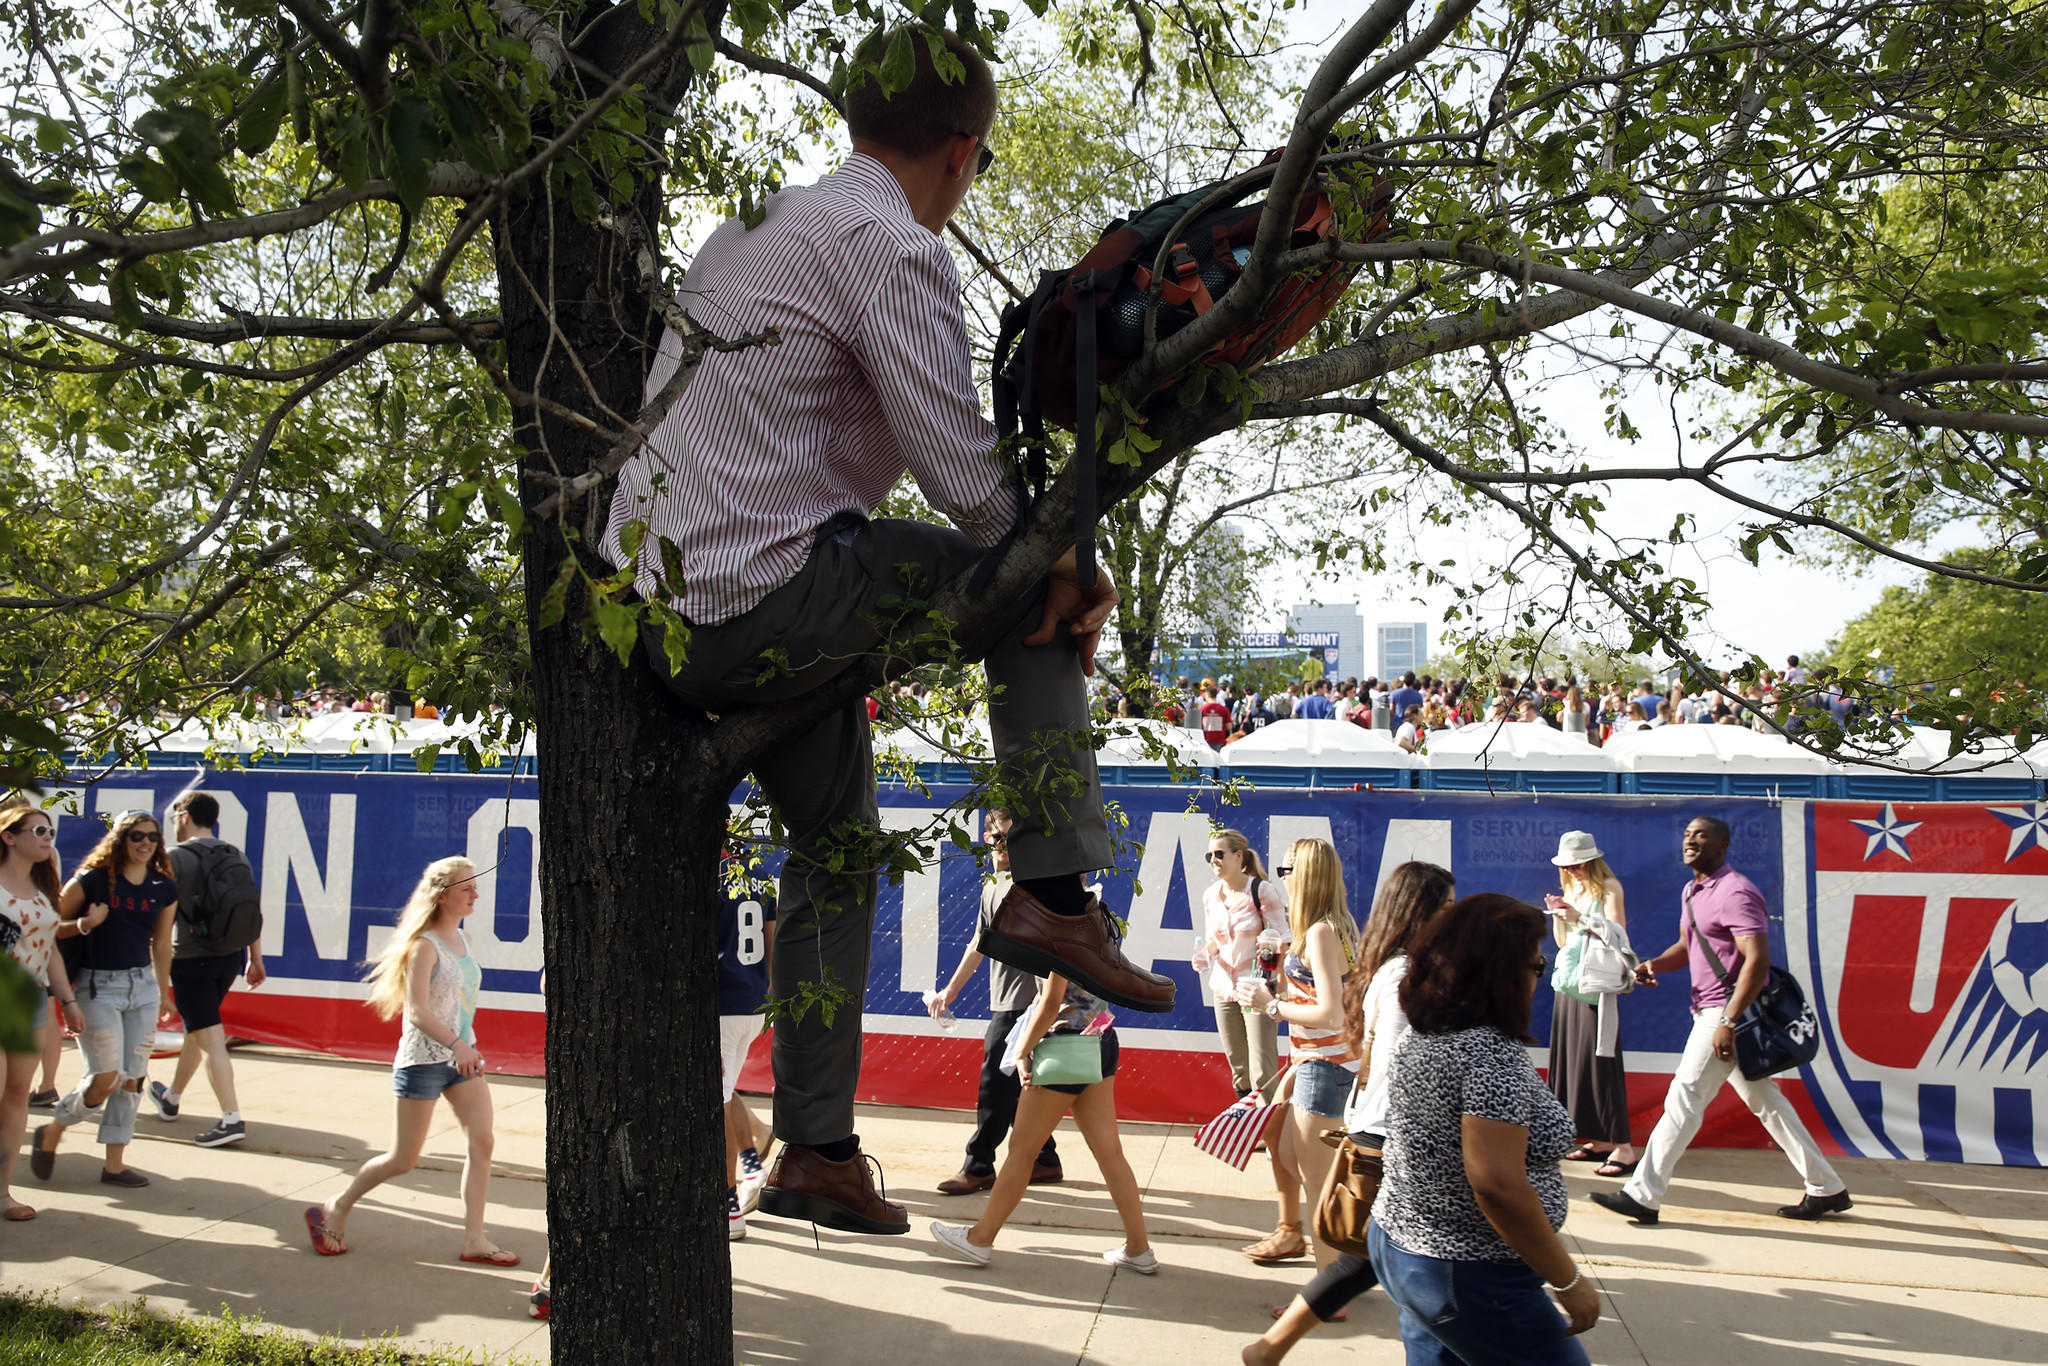 USA fan Brian Hunscher of Ann Arbor, Michigan watches from a tree in Chicago's Grant Park as the U.S. Men's National team plays Ghana in a World Cup match on Monday.